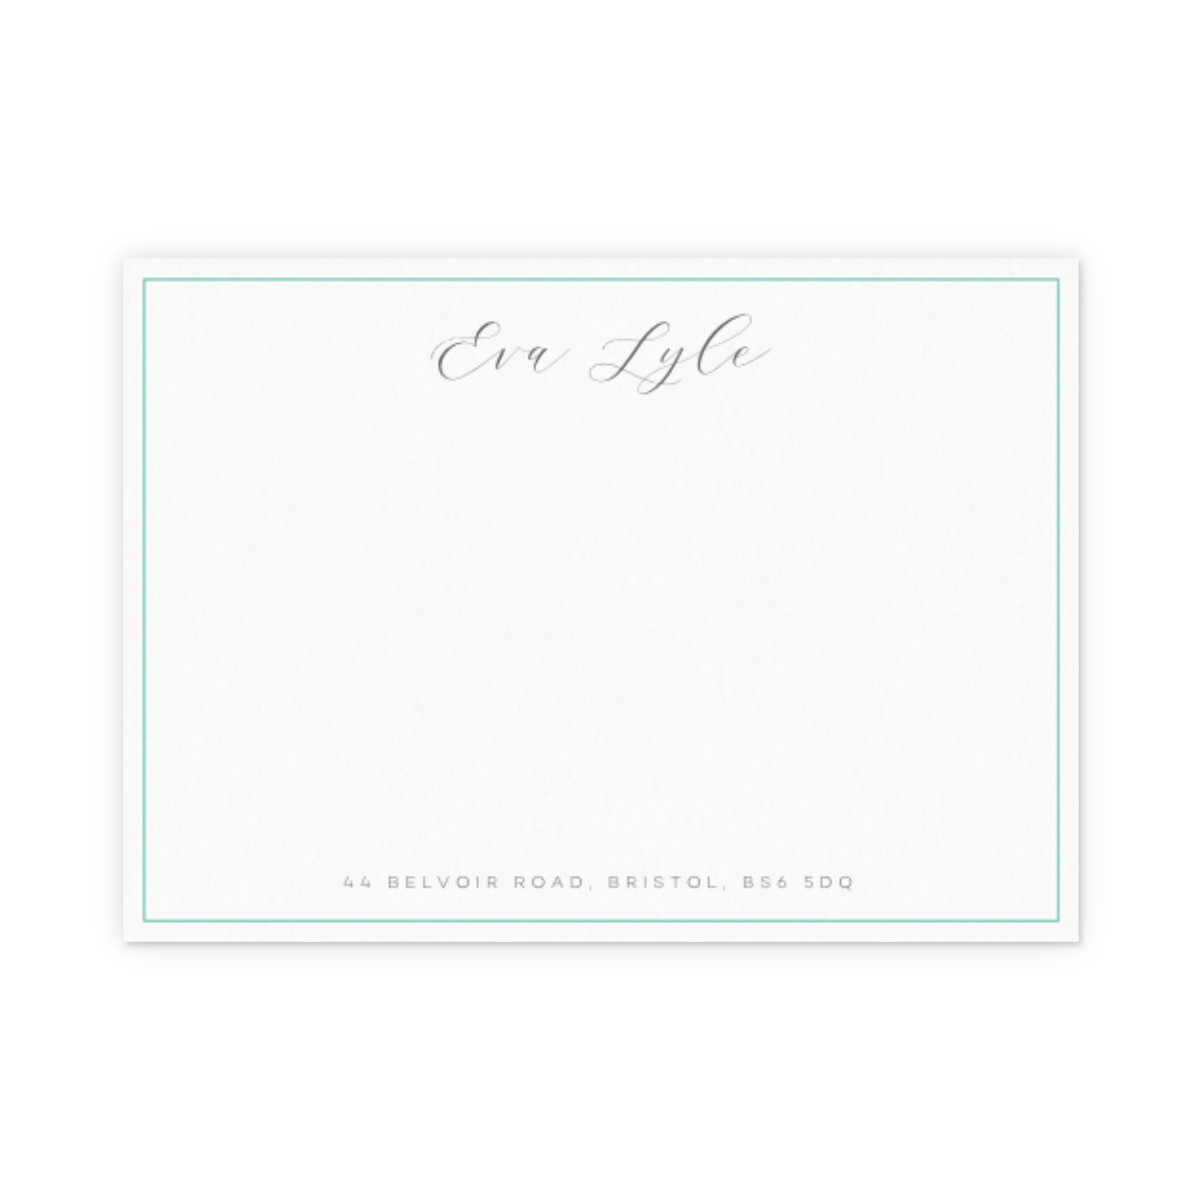 Https%3a%2f%2fwww.papier.com%2fproduct image%2f95977%2f10%2fmodern calligraphy 24082 front 1573747251.png?ixlib=rb 1.1